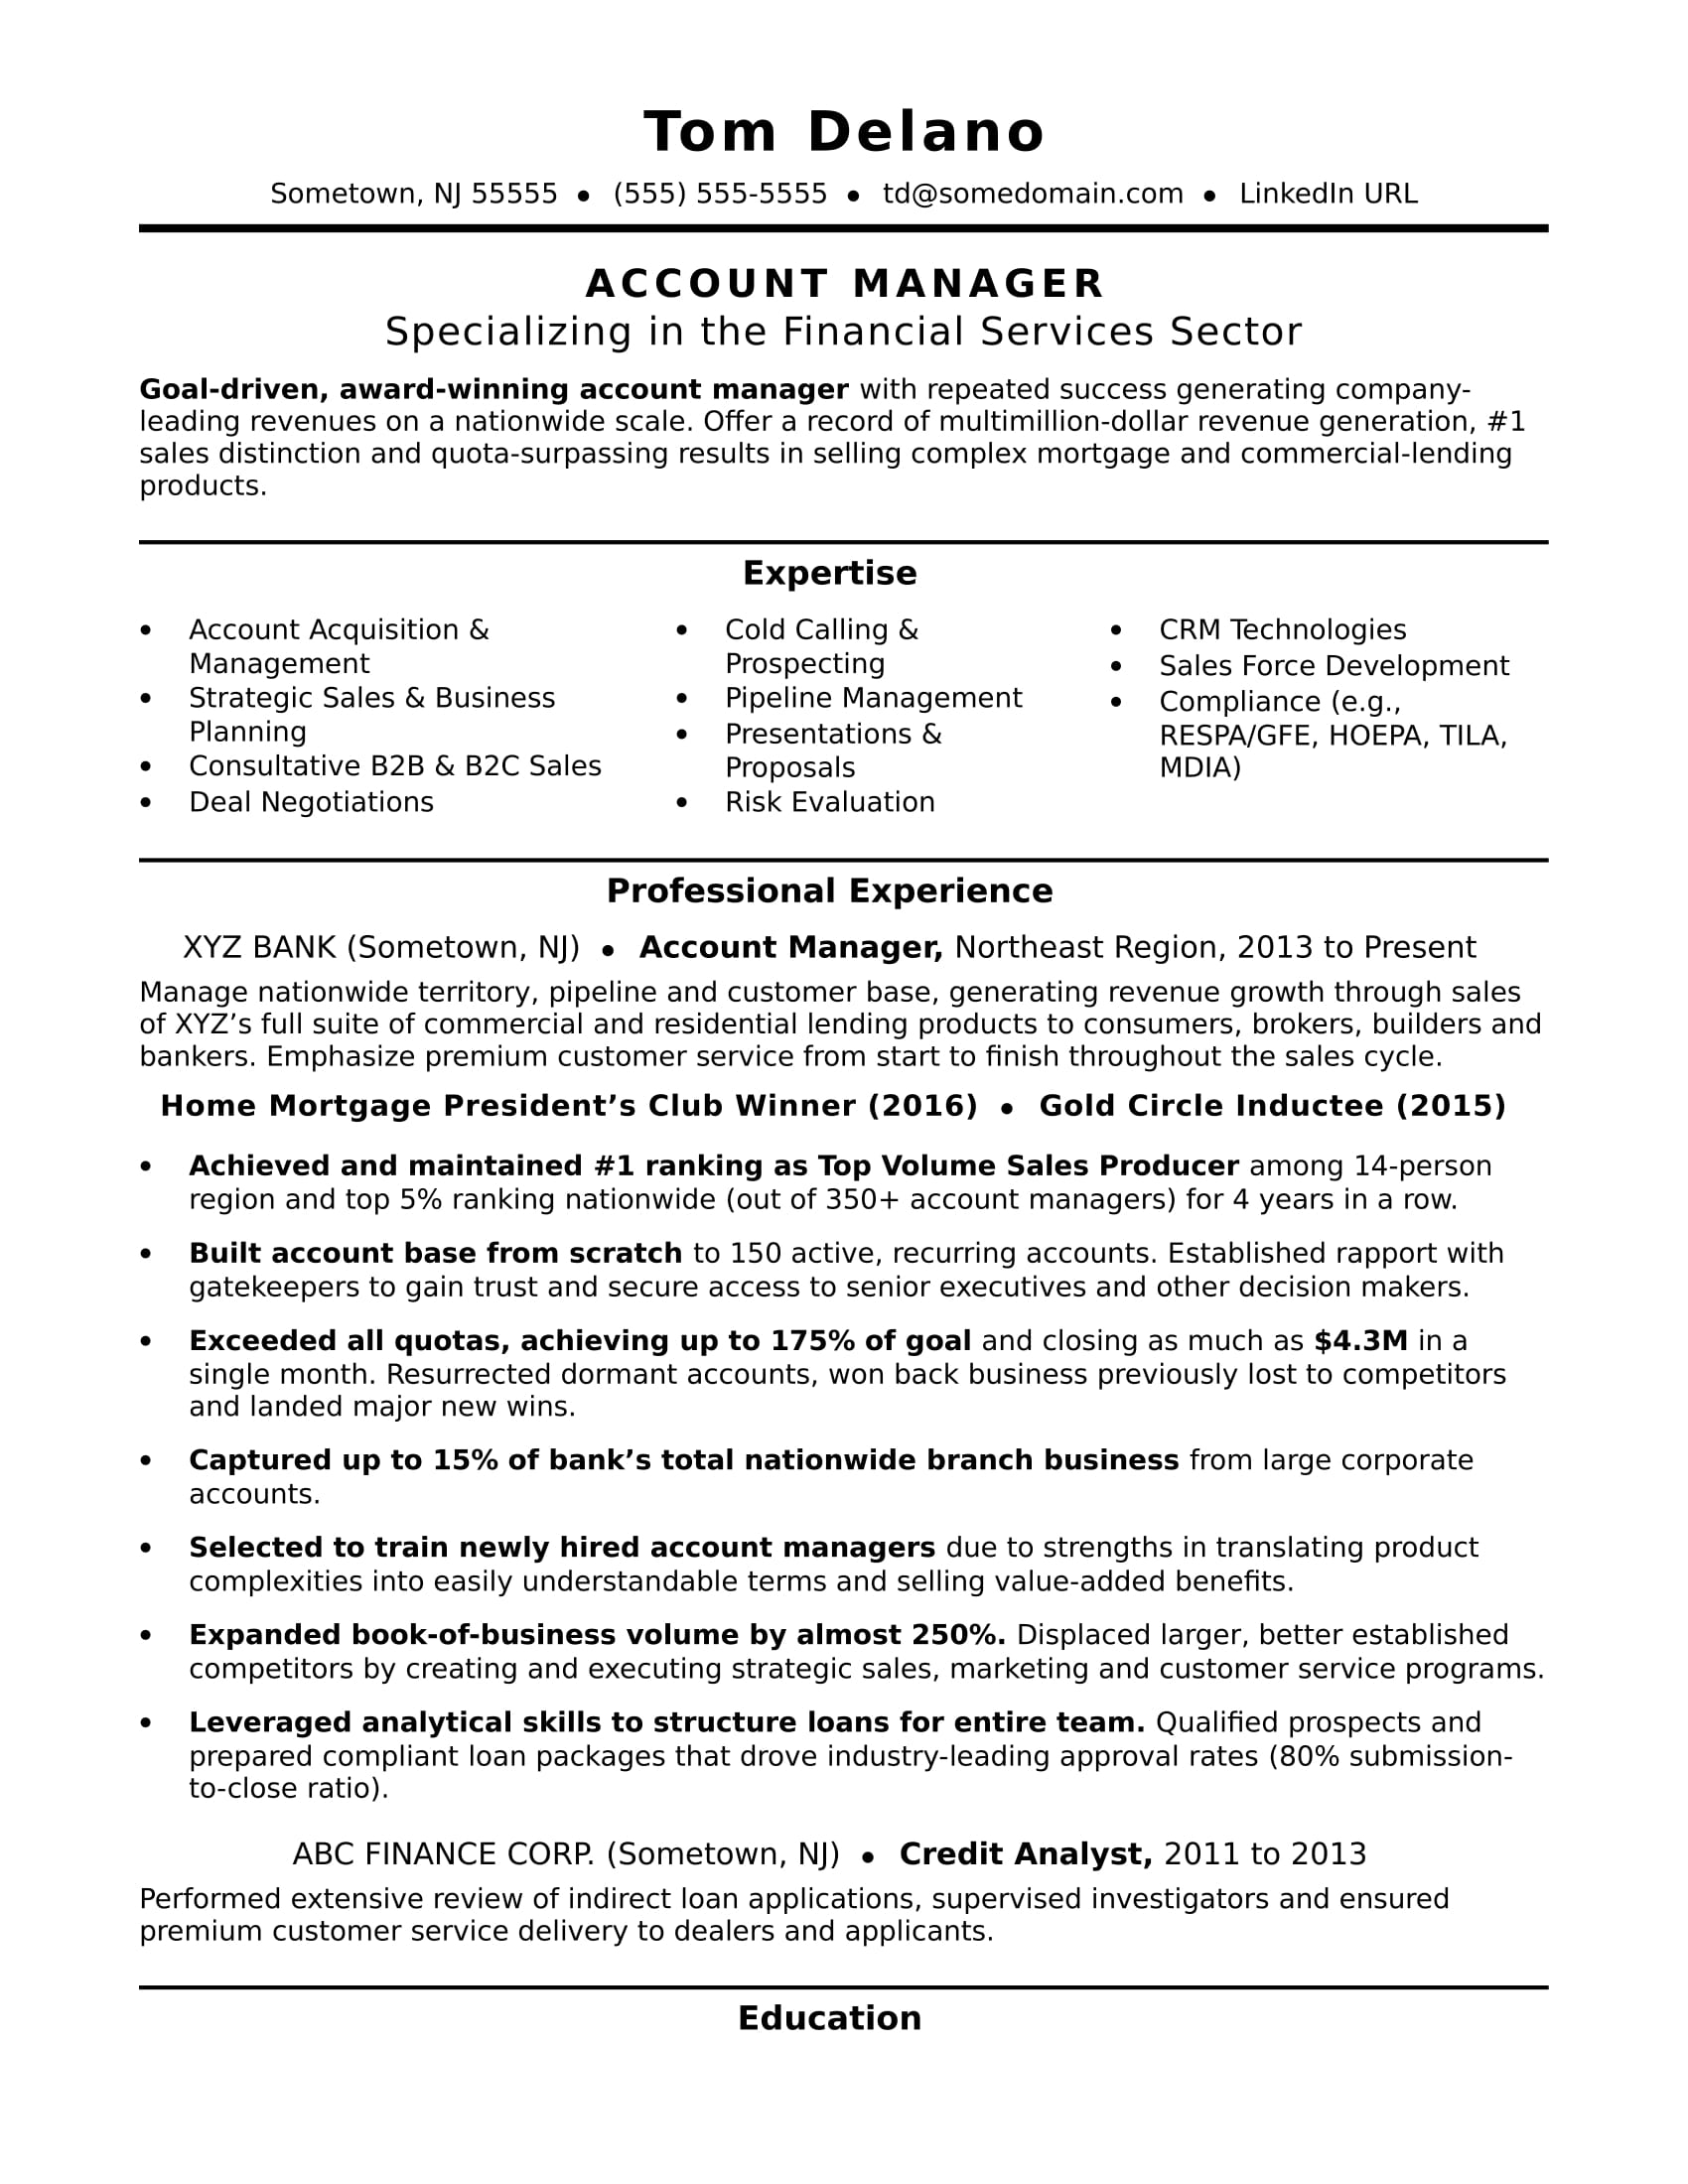 Account Manager Resume Sample  Pharmacy Manager Resume